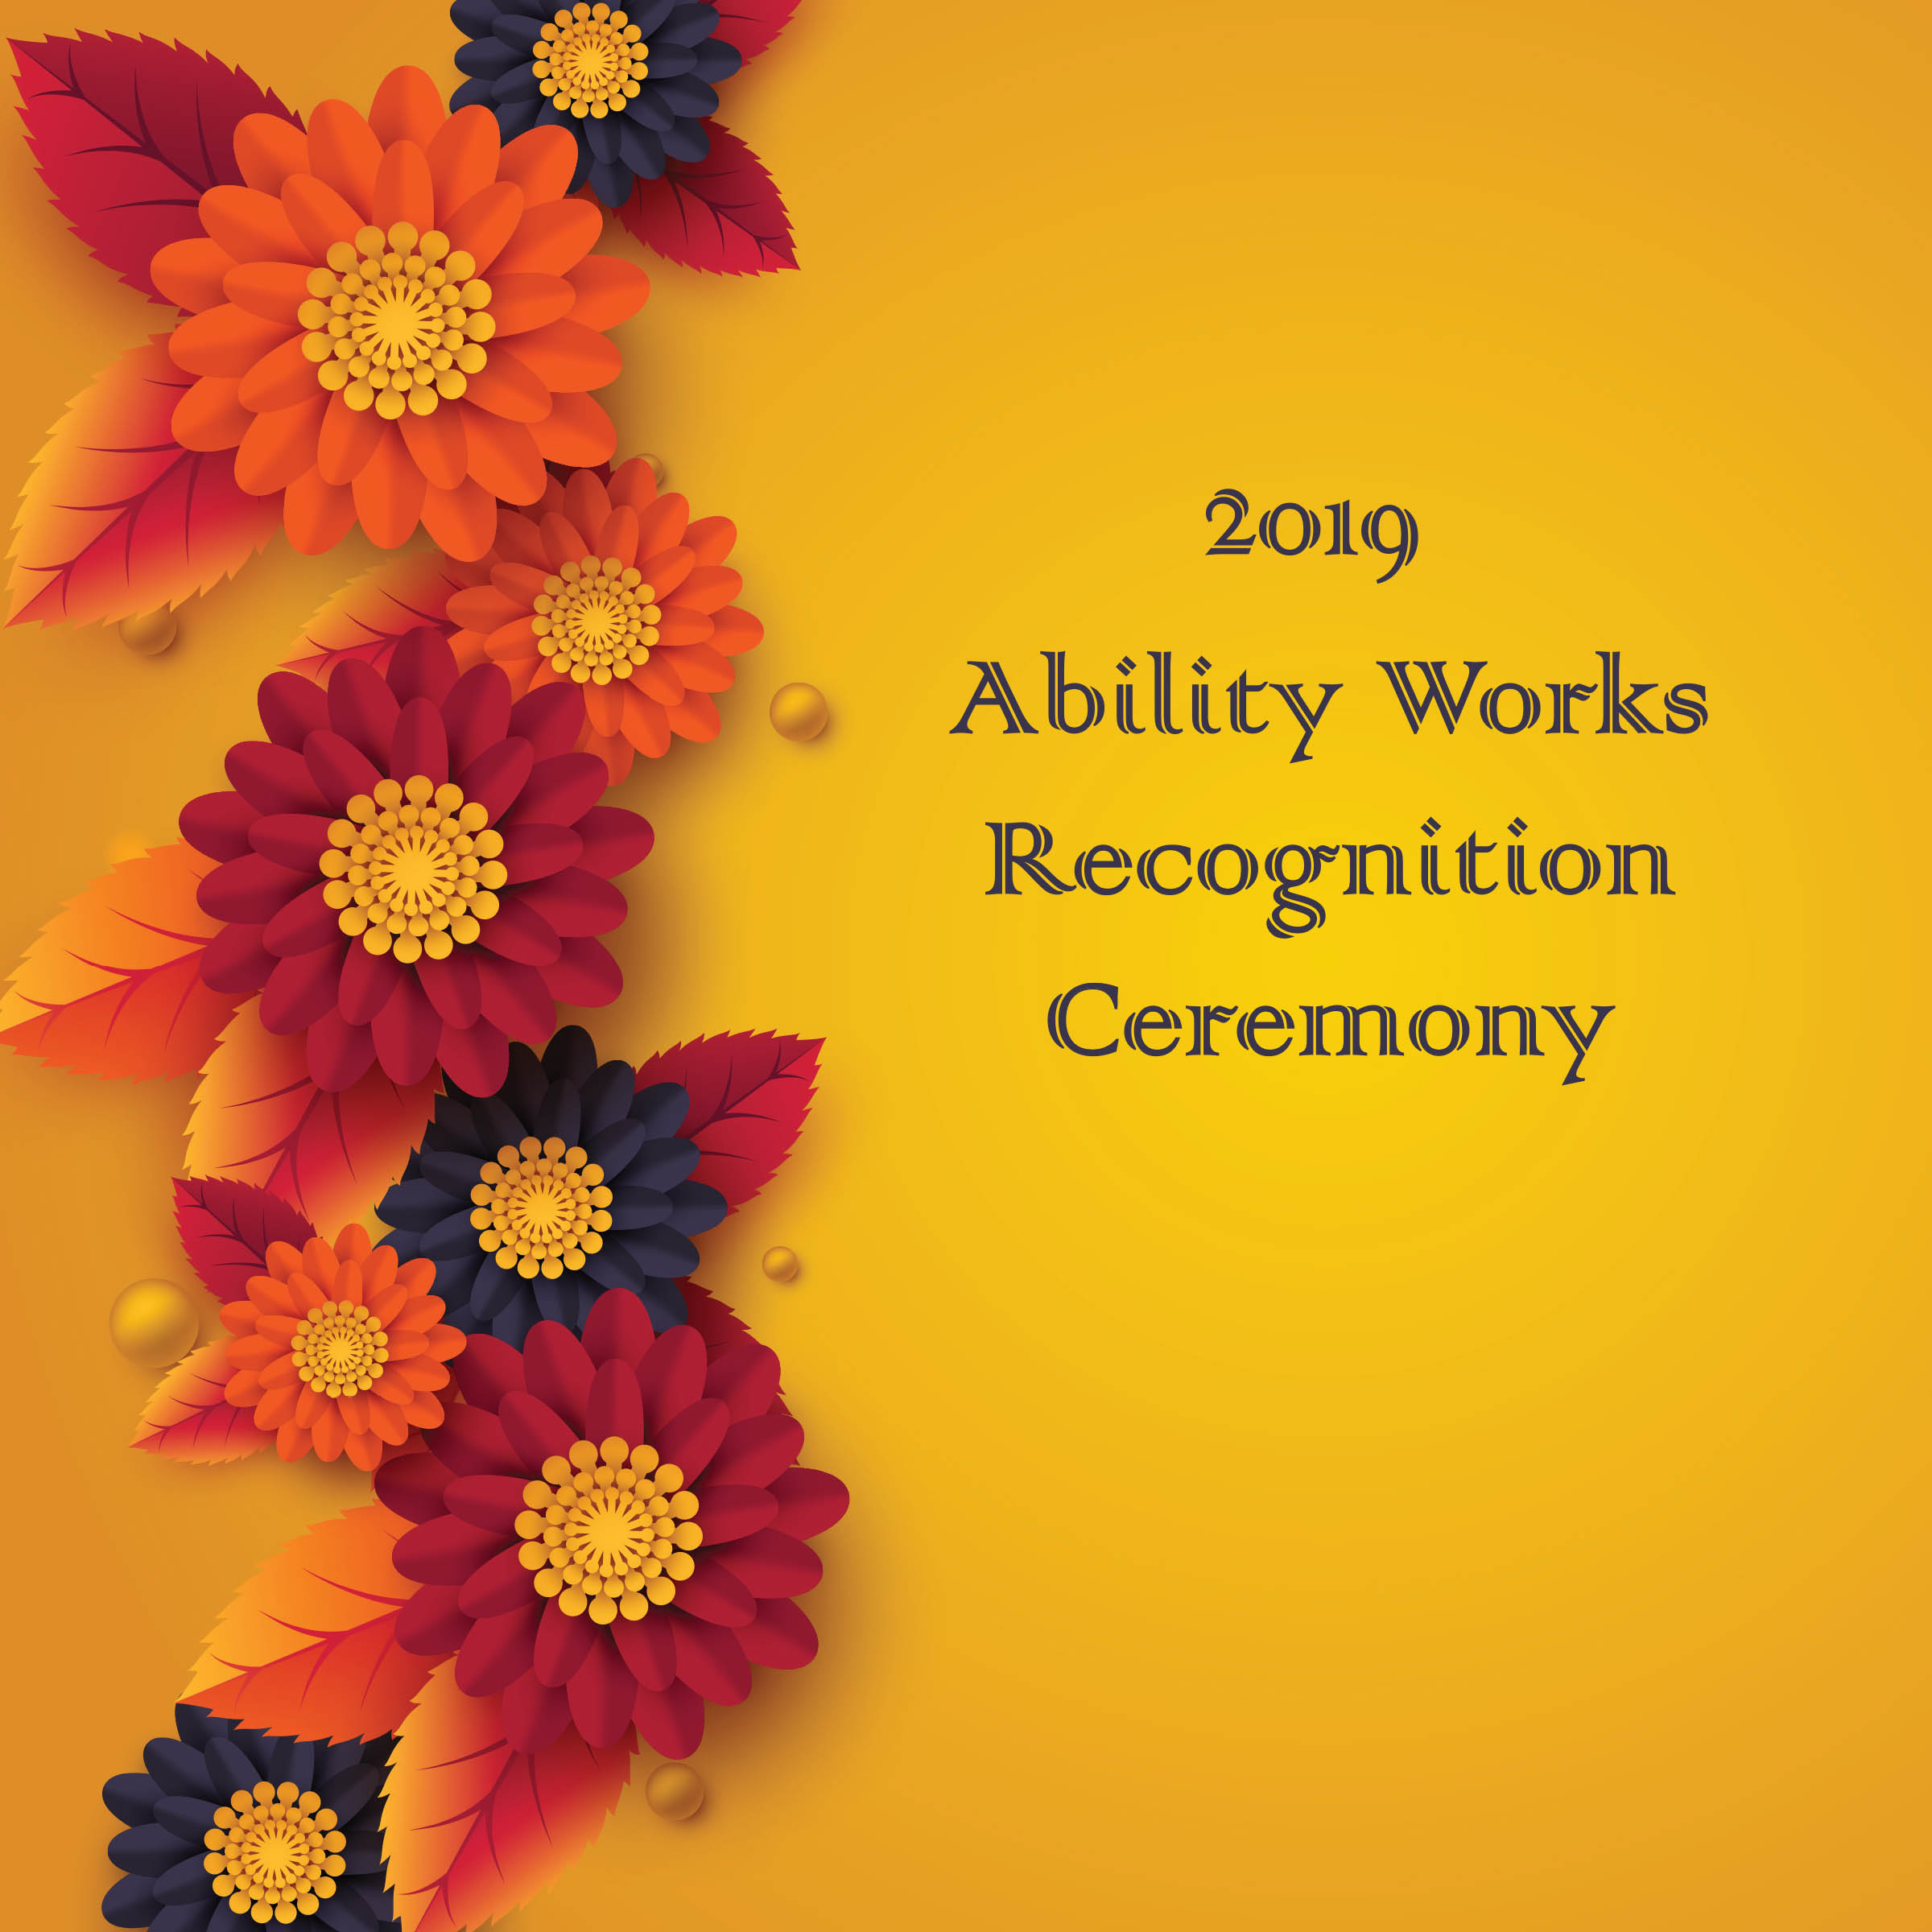 Ability Works 2019 Wv Division Of Rehabilitation Services